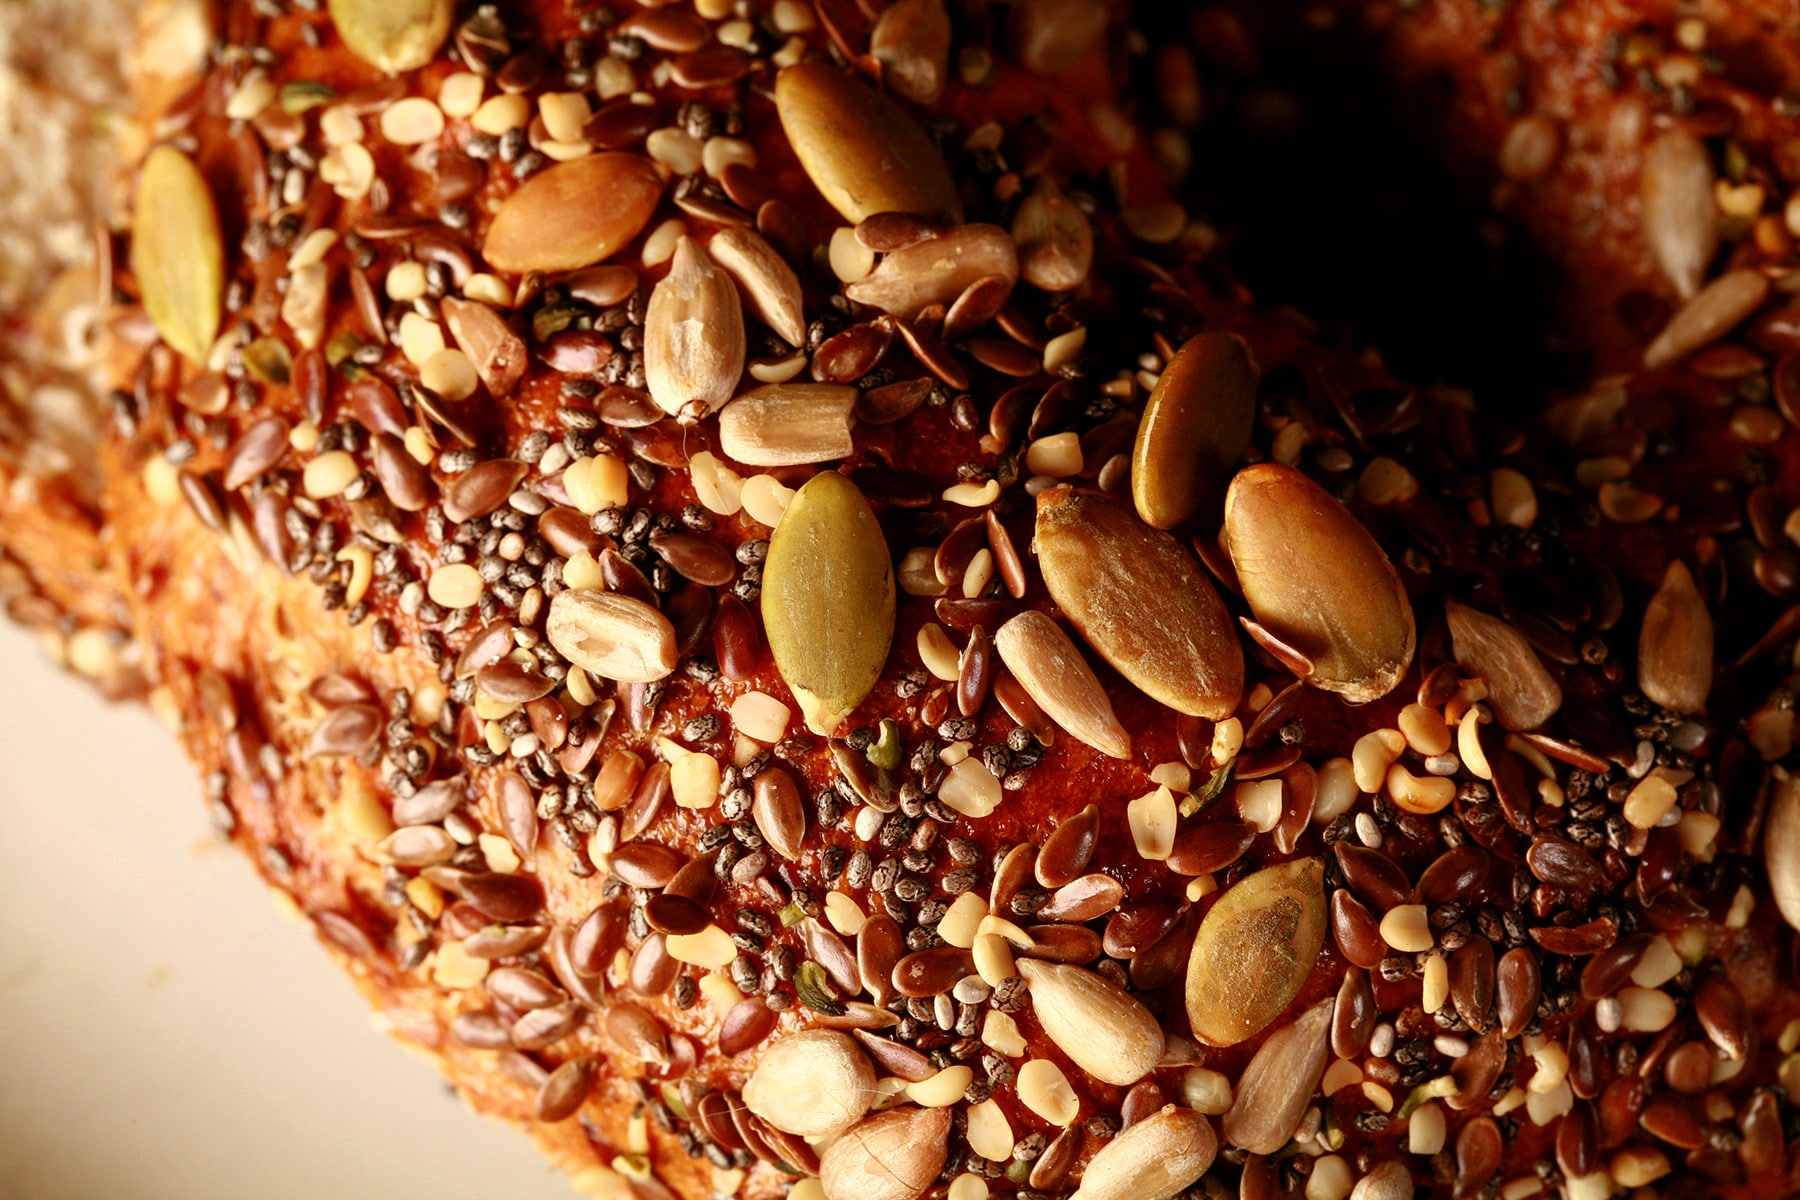 A close up view of the top of a seeded whole wheat flax bagel. The top is covered in a mix of seeds - pumpkin, sunflower, flax, sesame, chia, and poppy.